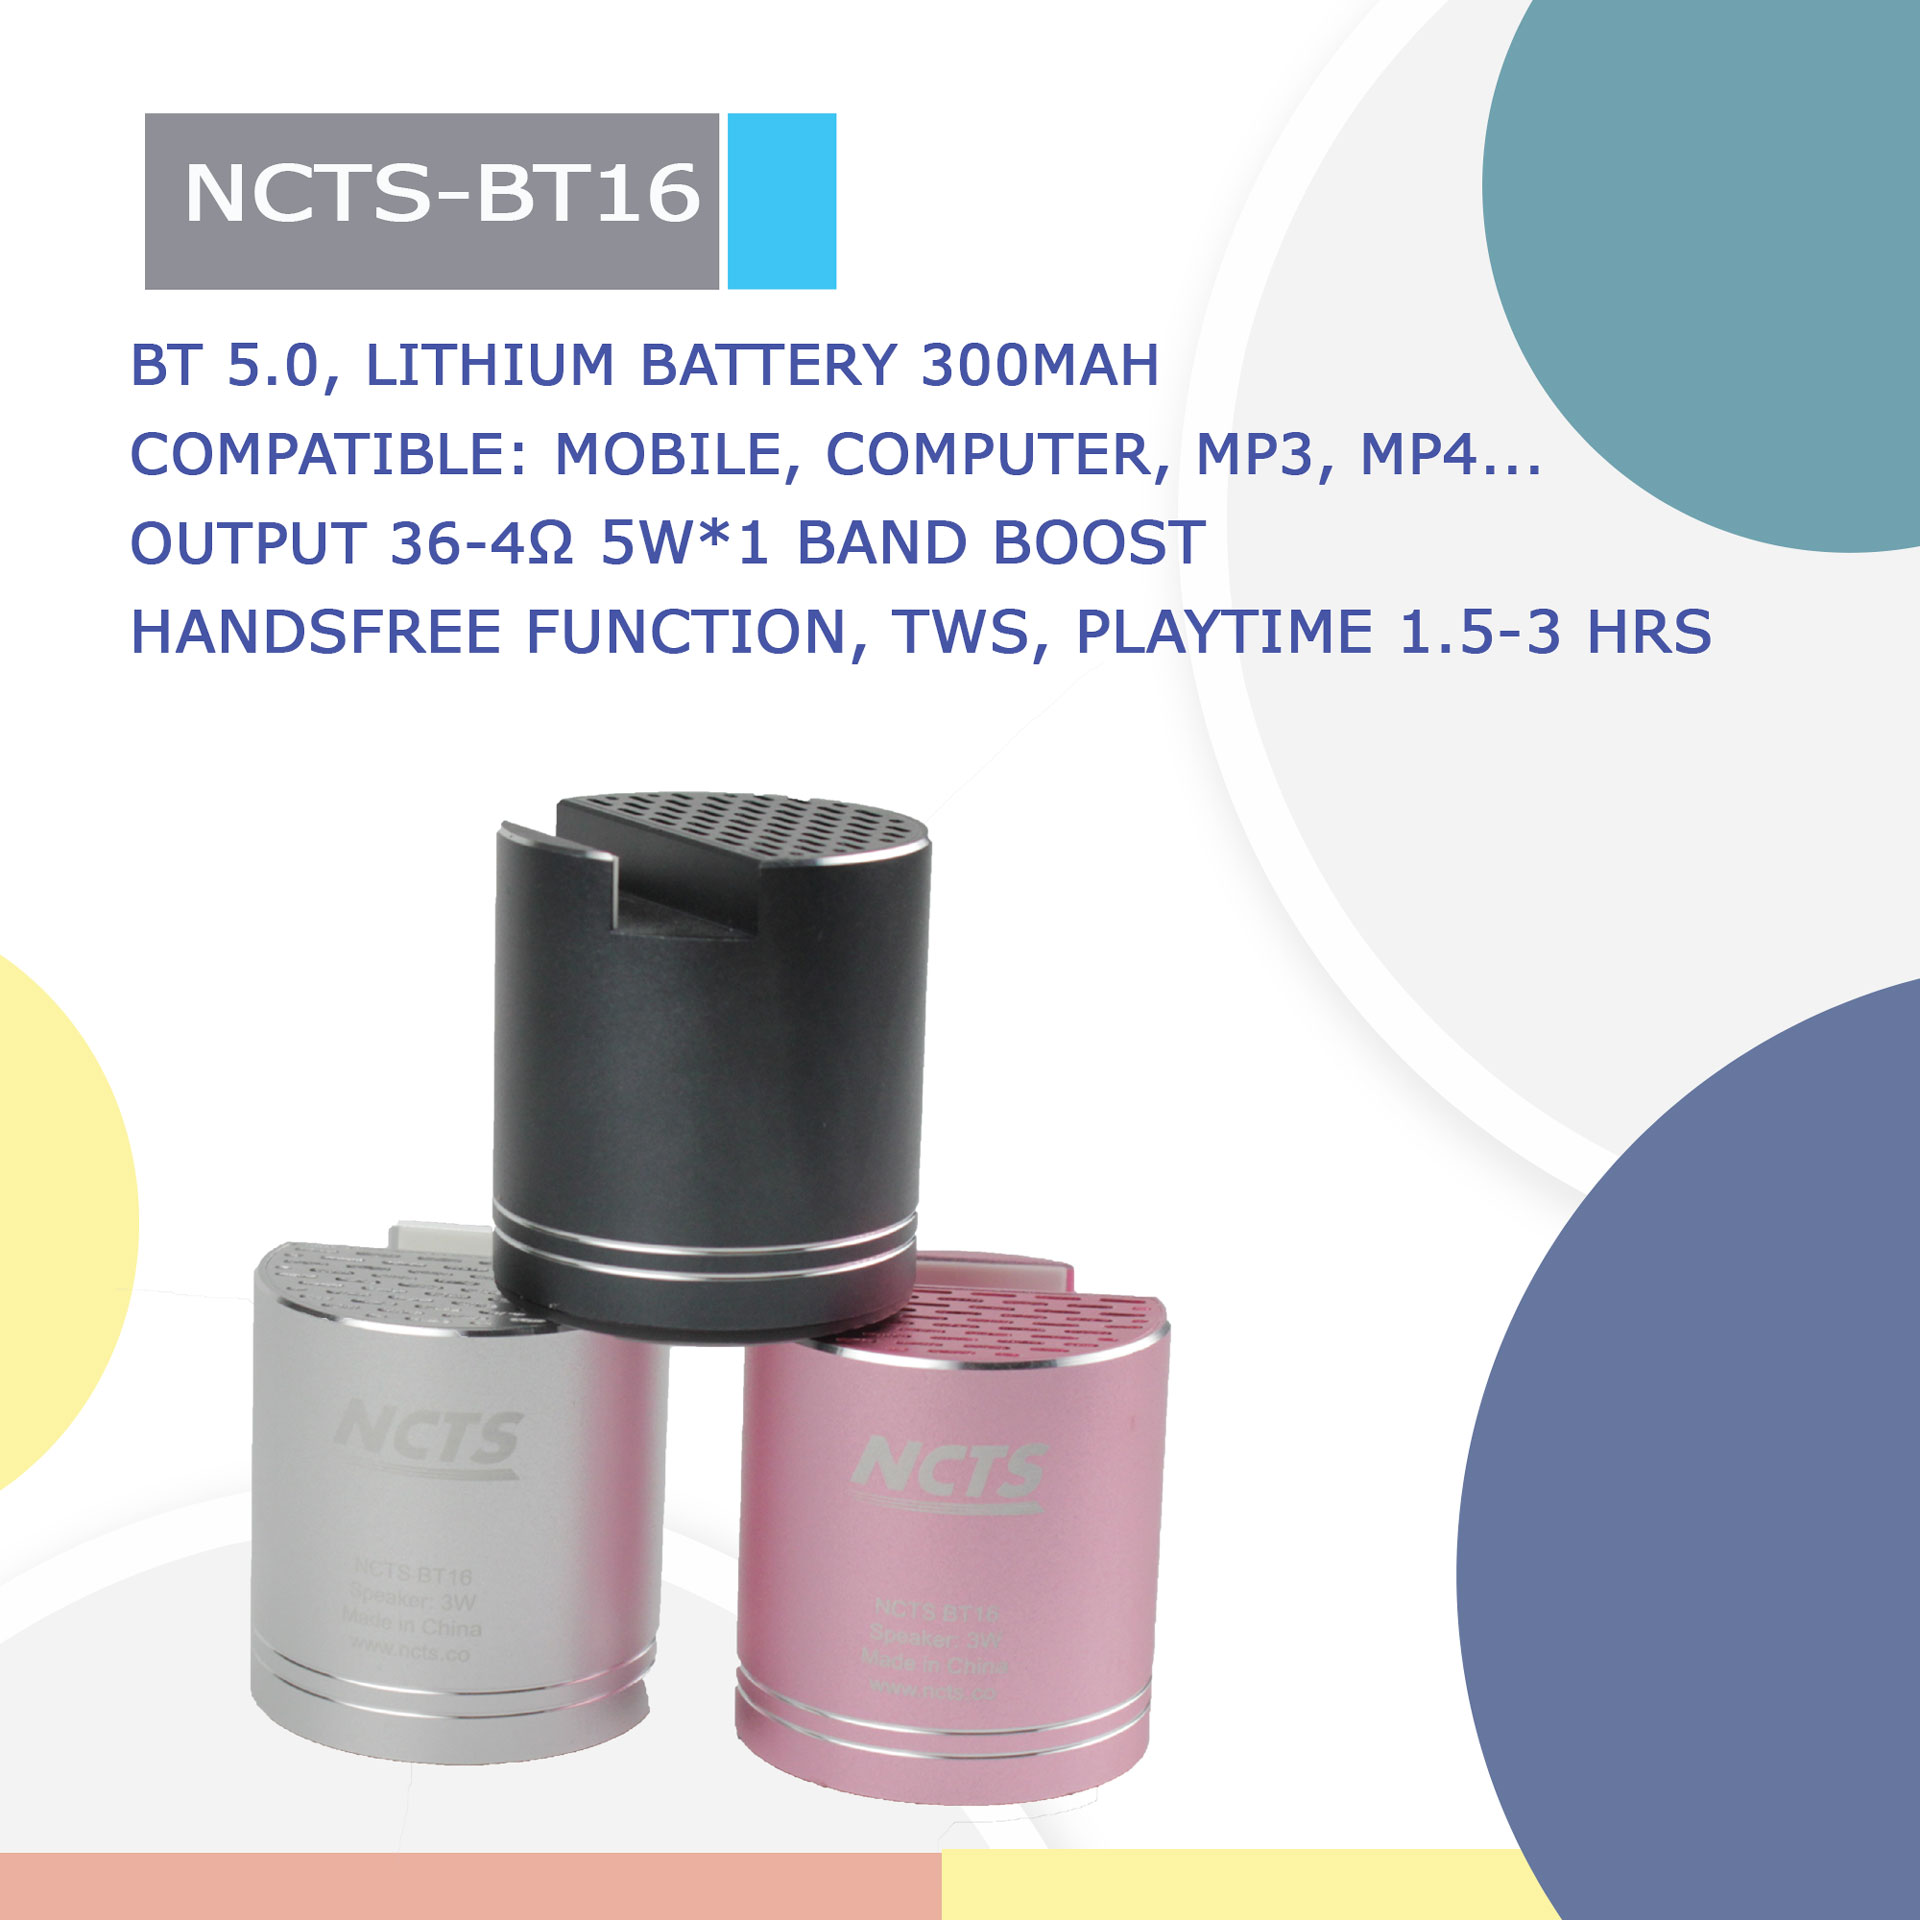 NCTS-BT16